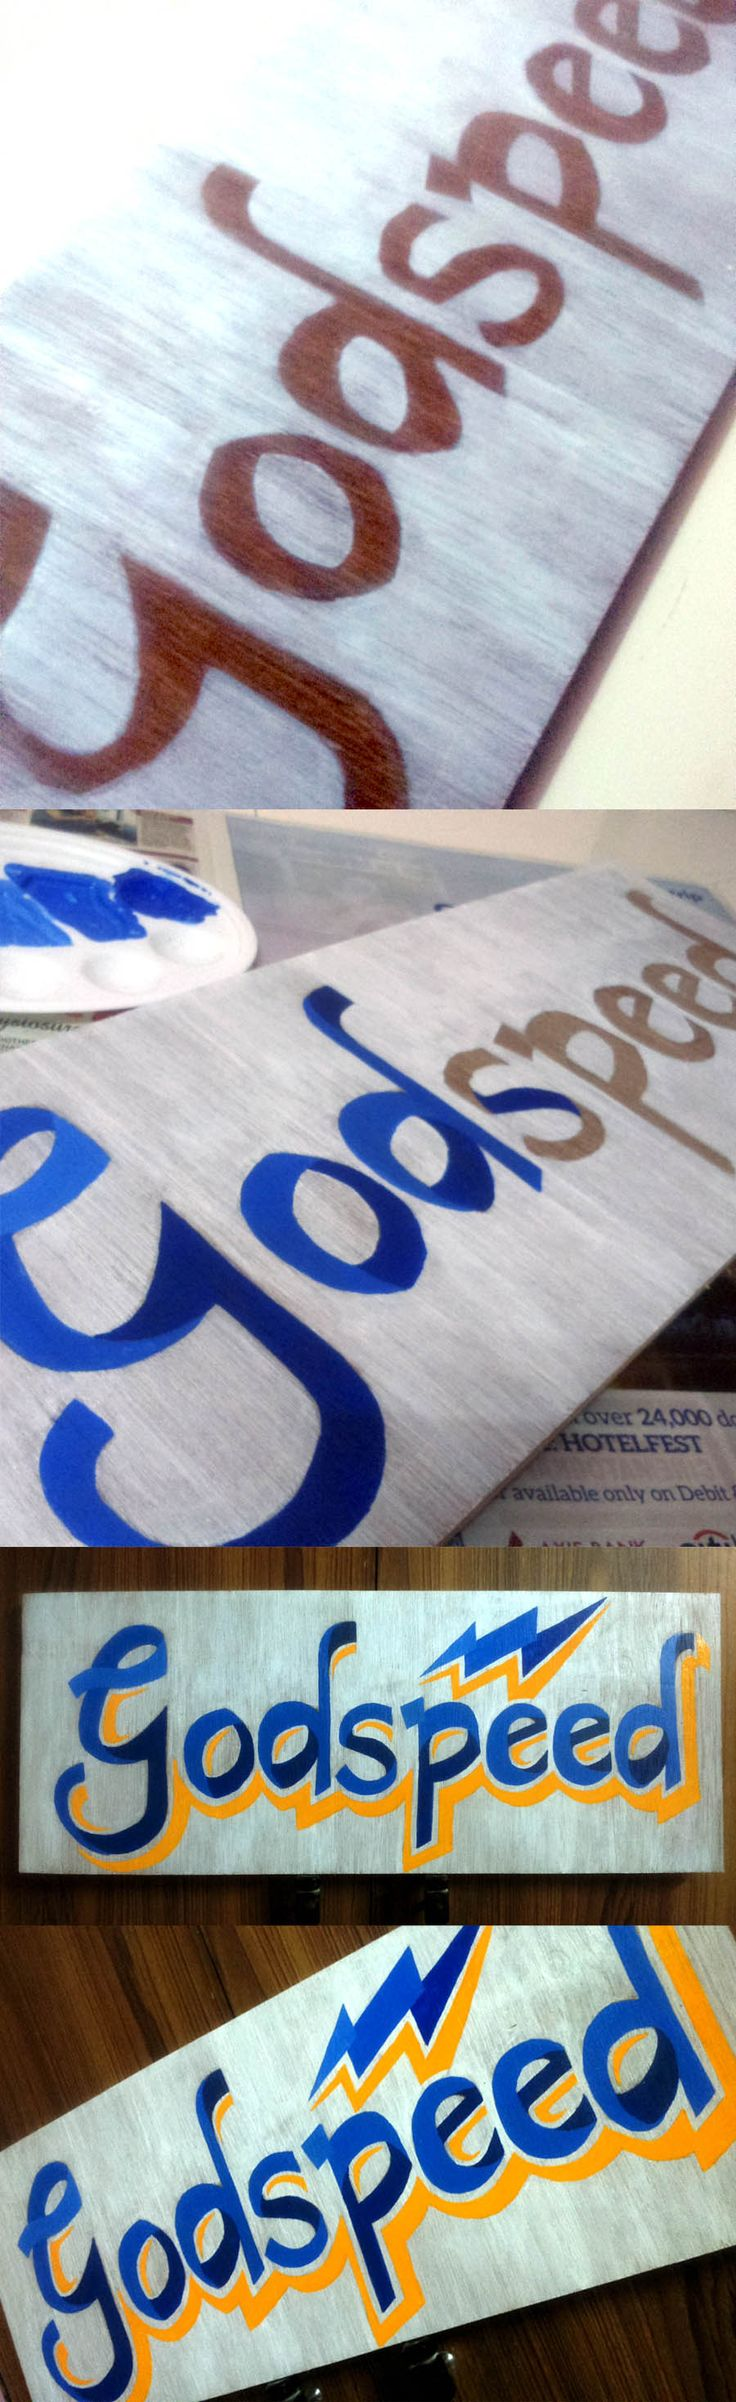 Godspeed - Typography on wood